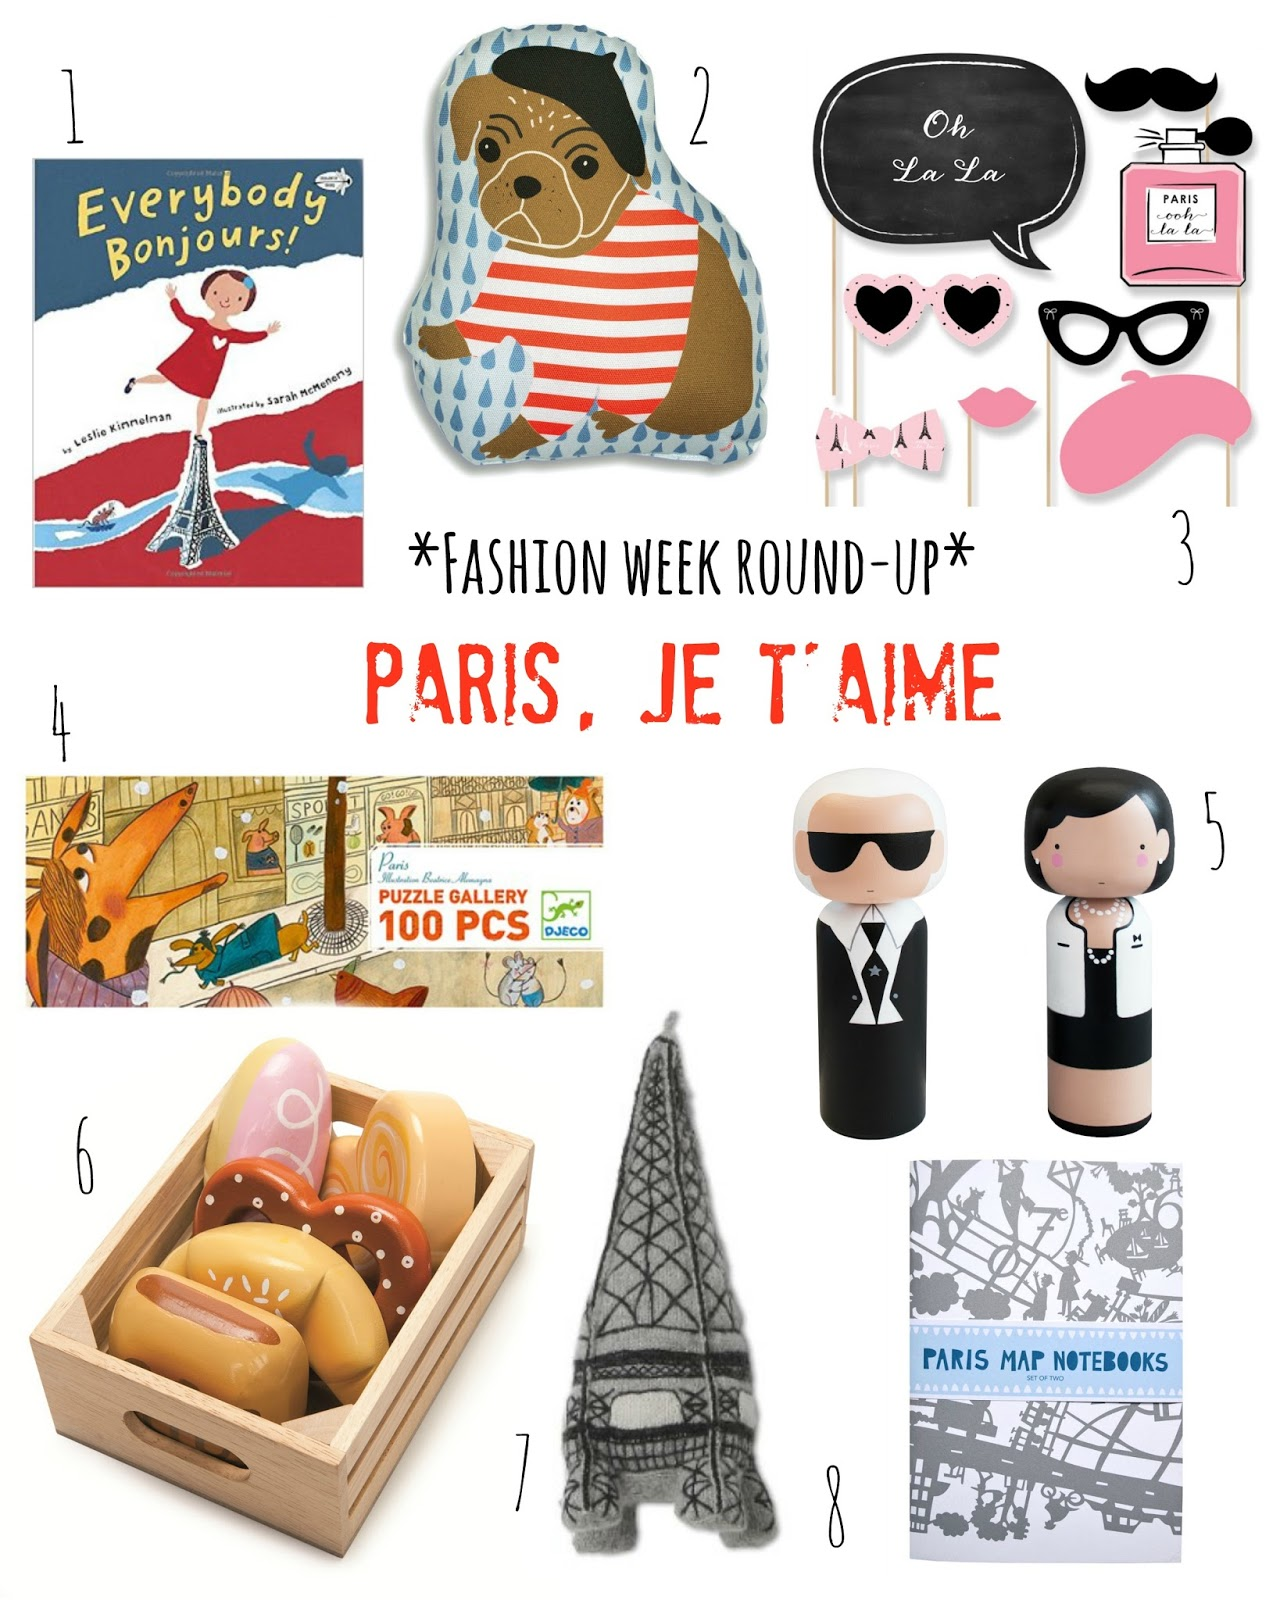 mamasVIB | V. I. BUSY BEES: 8 Mini fashionista buys inspired by Paris Fashion Week